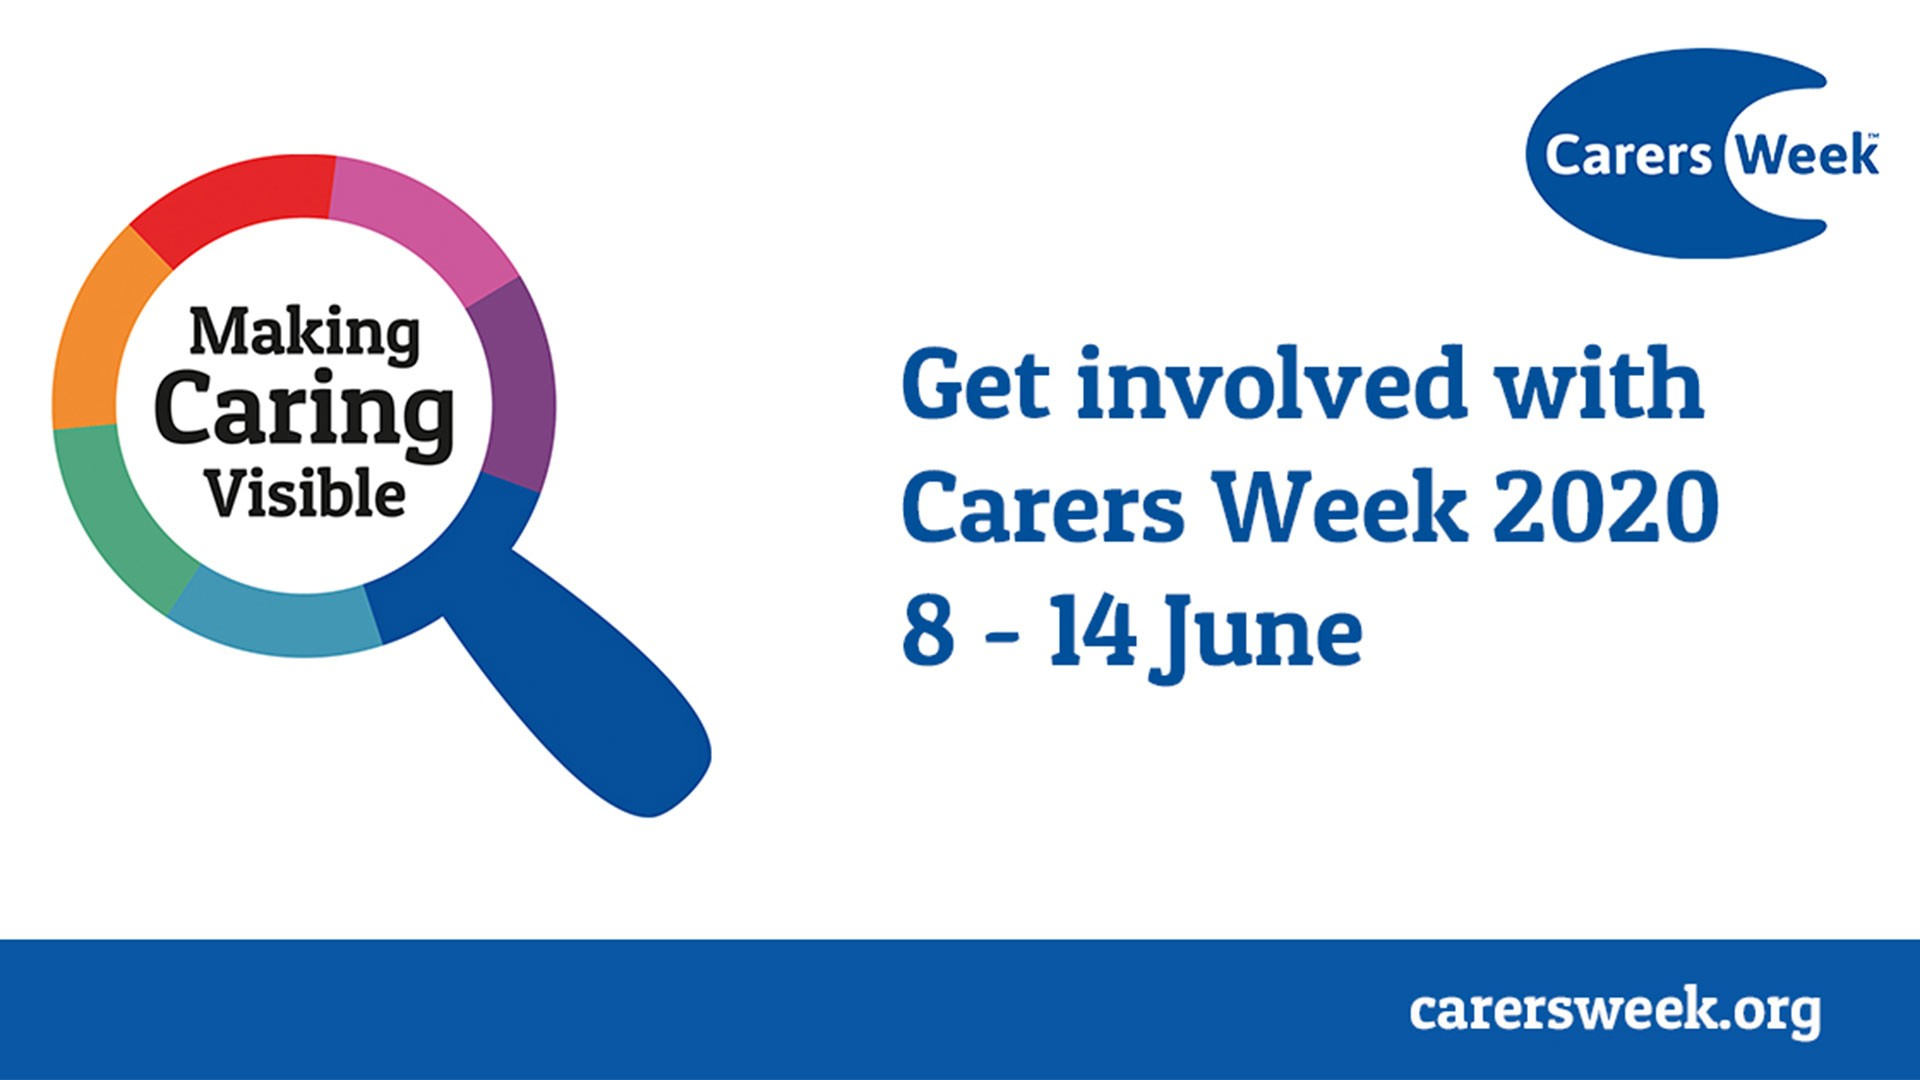 Carers-Week-2020-feat